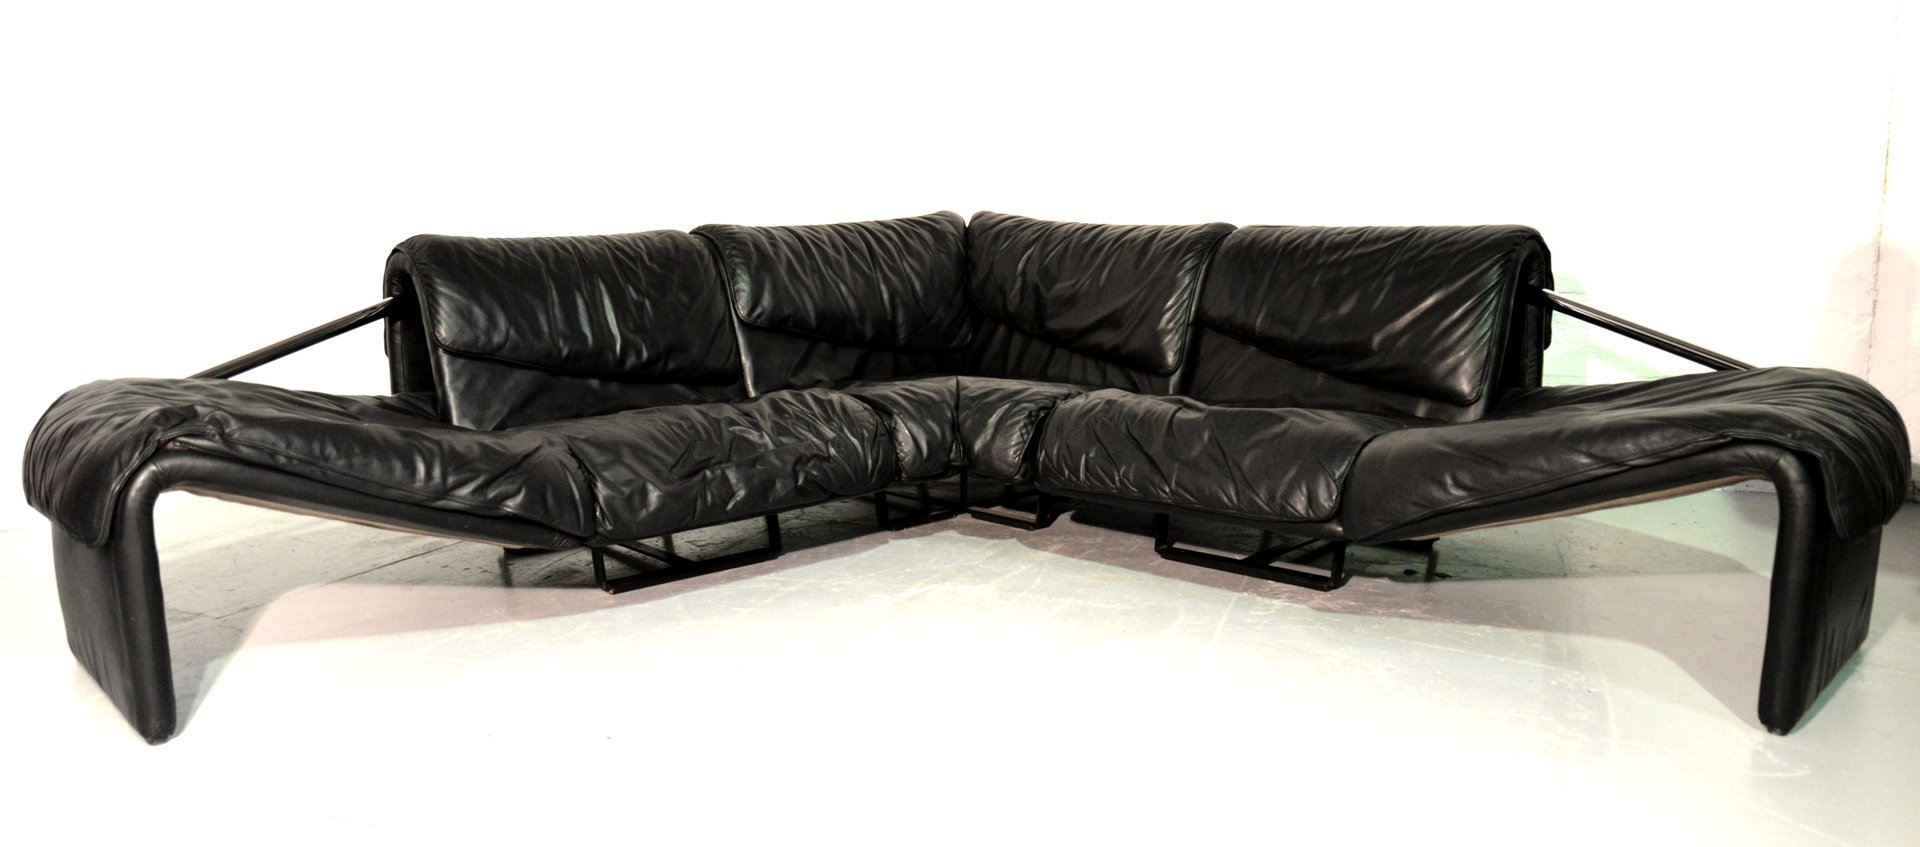 Inmotion Leather Corner Sofa From De Sede 1970s For Sale